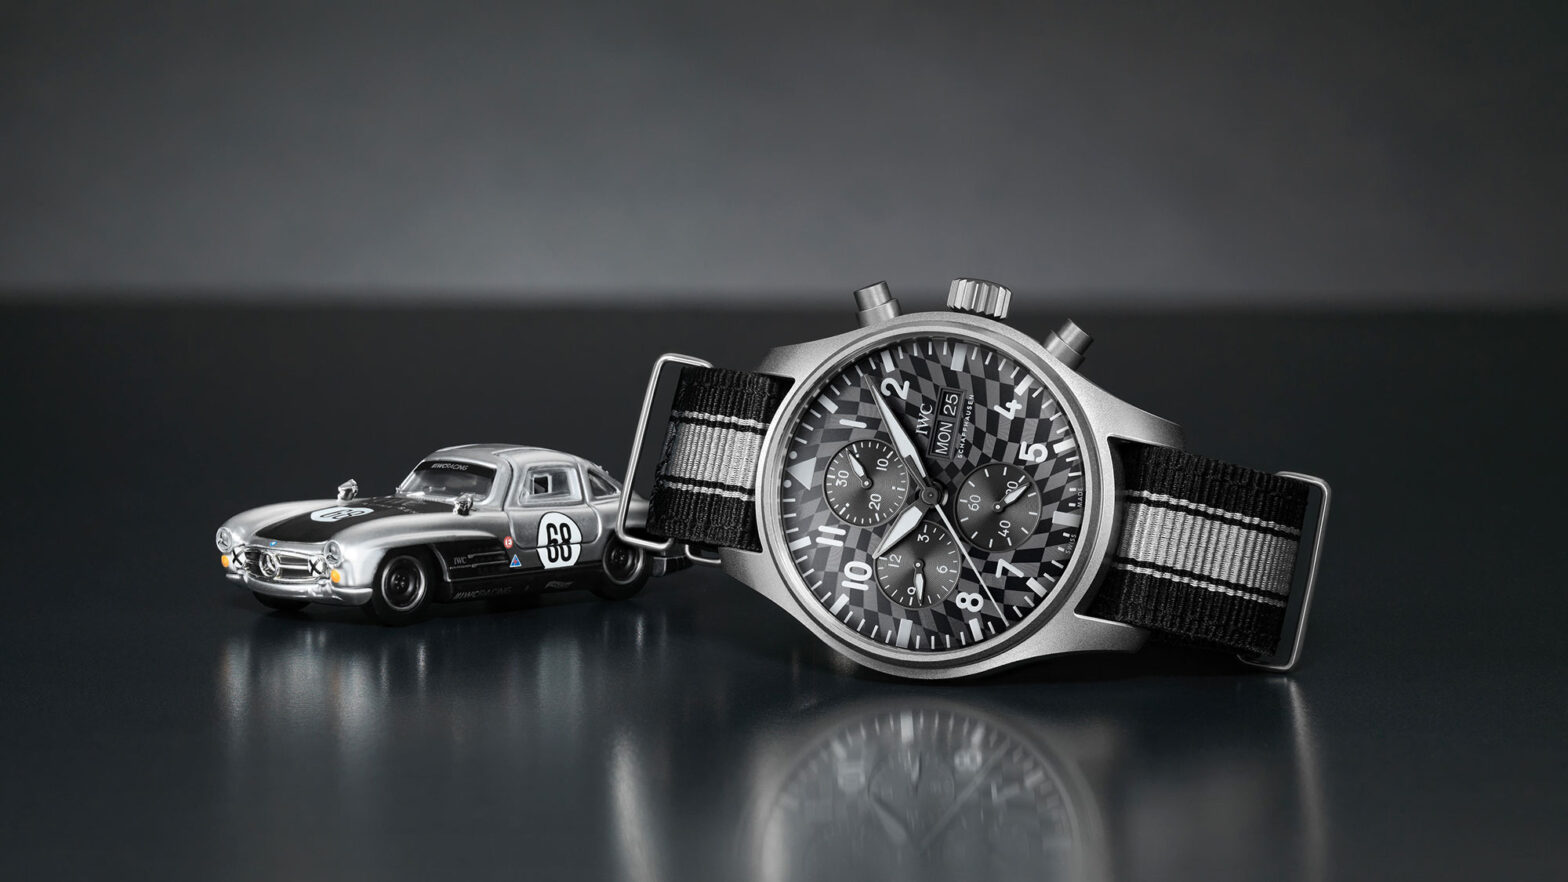 IWC x Hot Wheels Racing Works Collector's Set